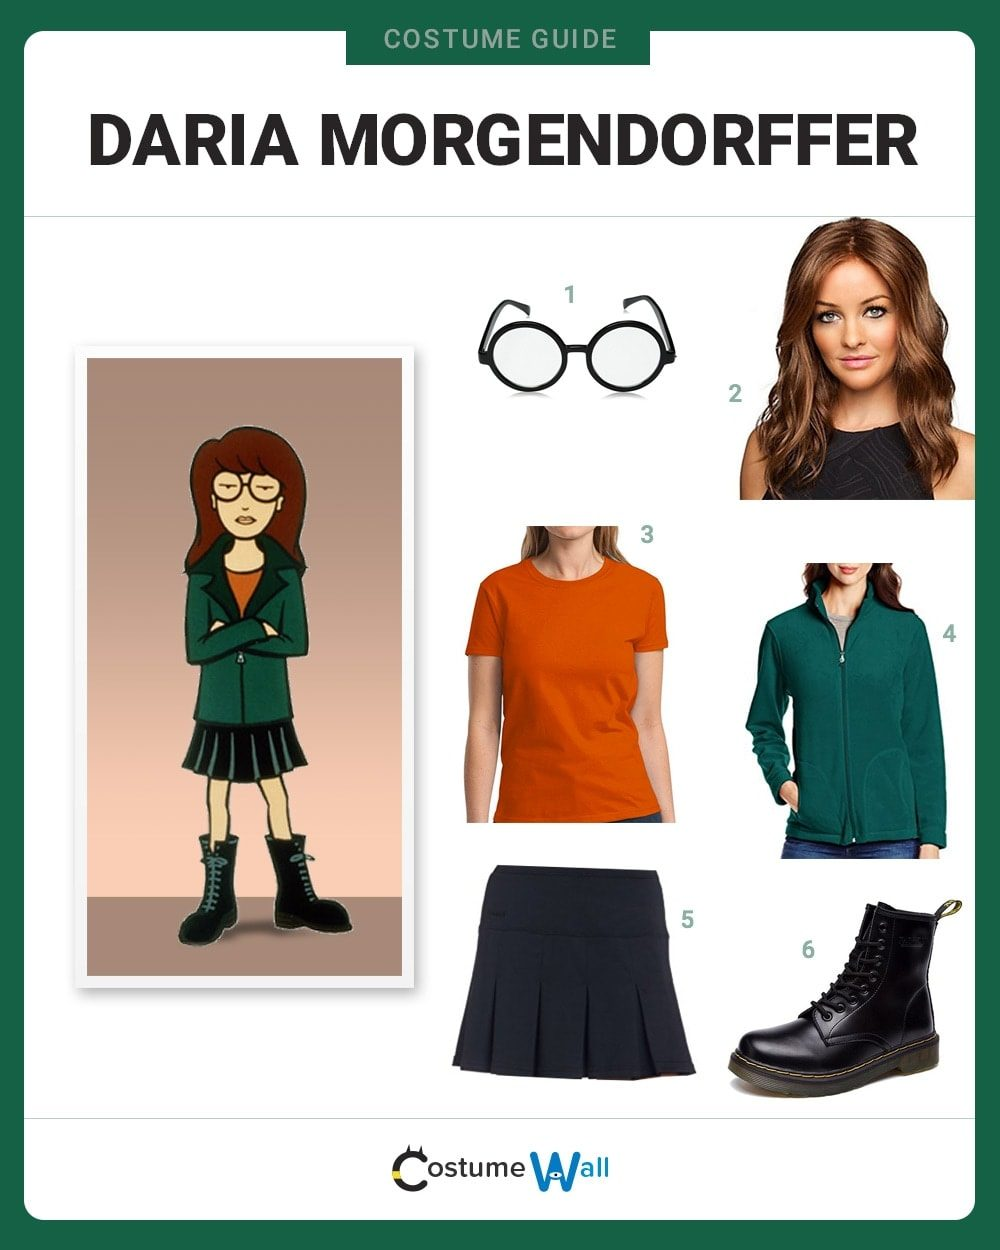 Daria Morgendorffer Costume Guide